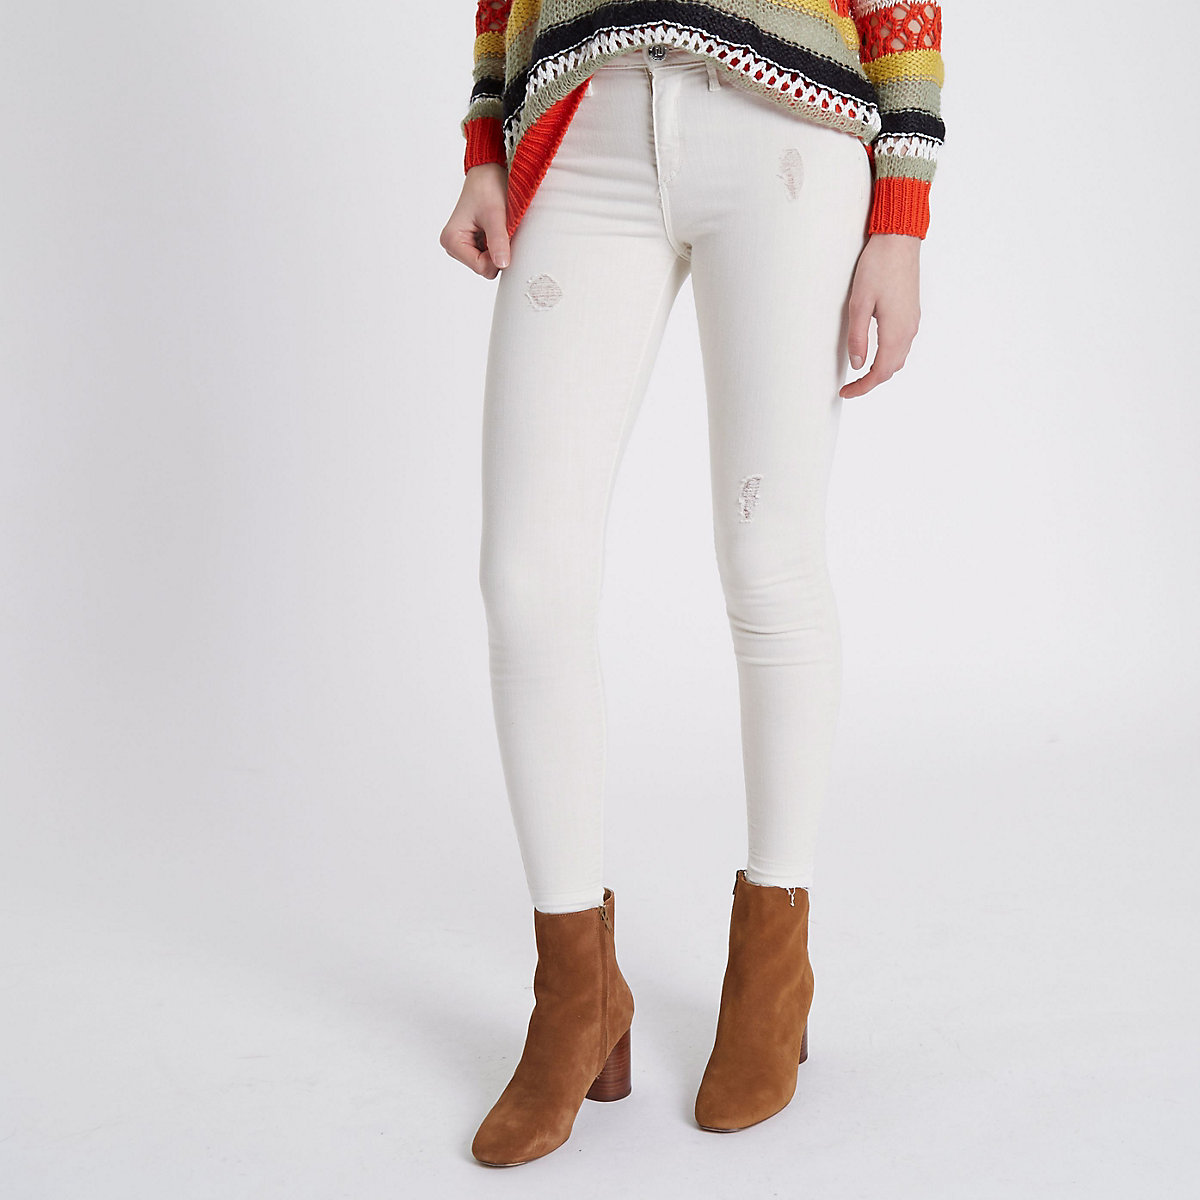 Molly - Crème distressed skinny jegging